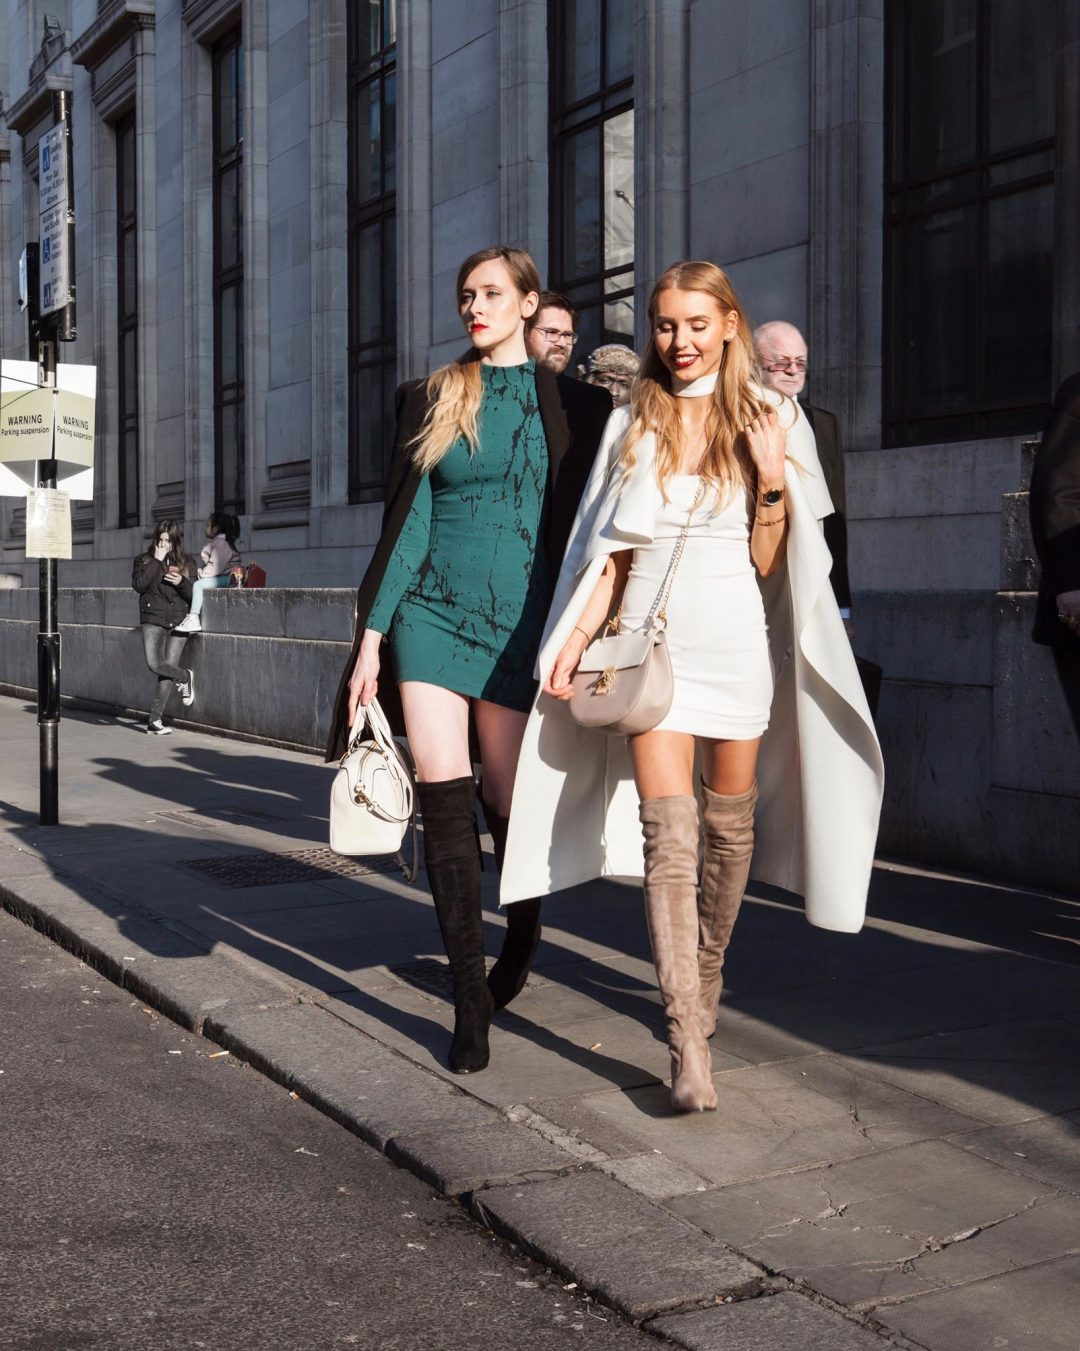 How to Get Invited To London Fashion Week (or Any Other Fashion Week) as a Blogger